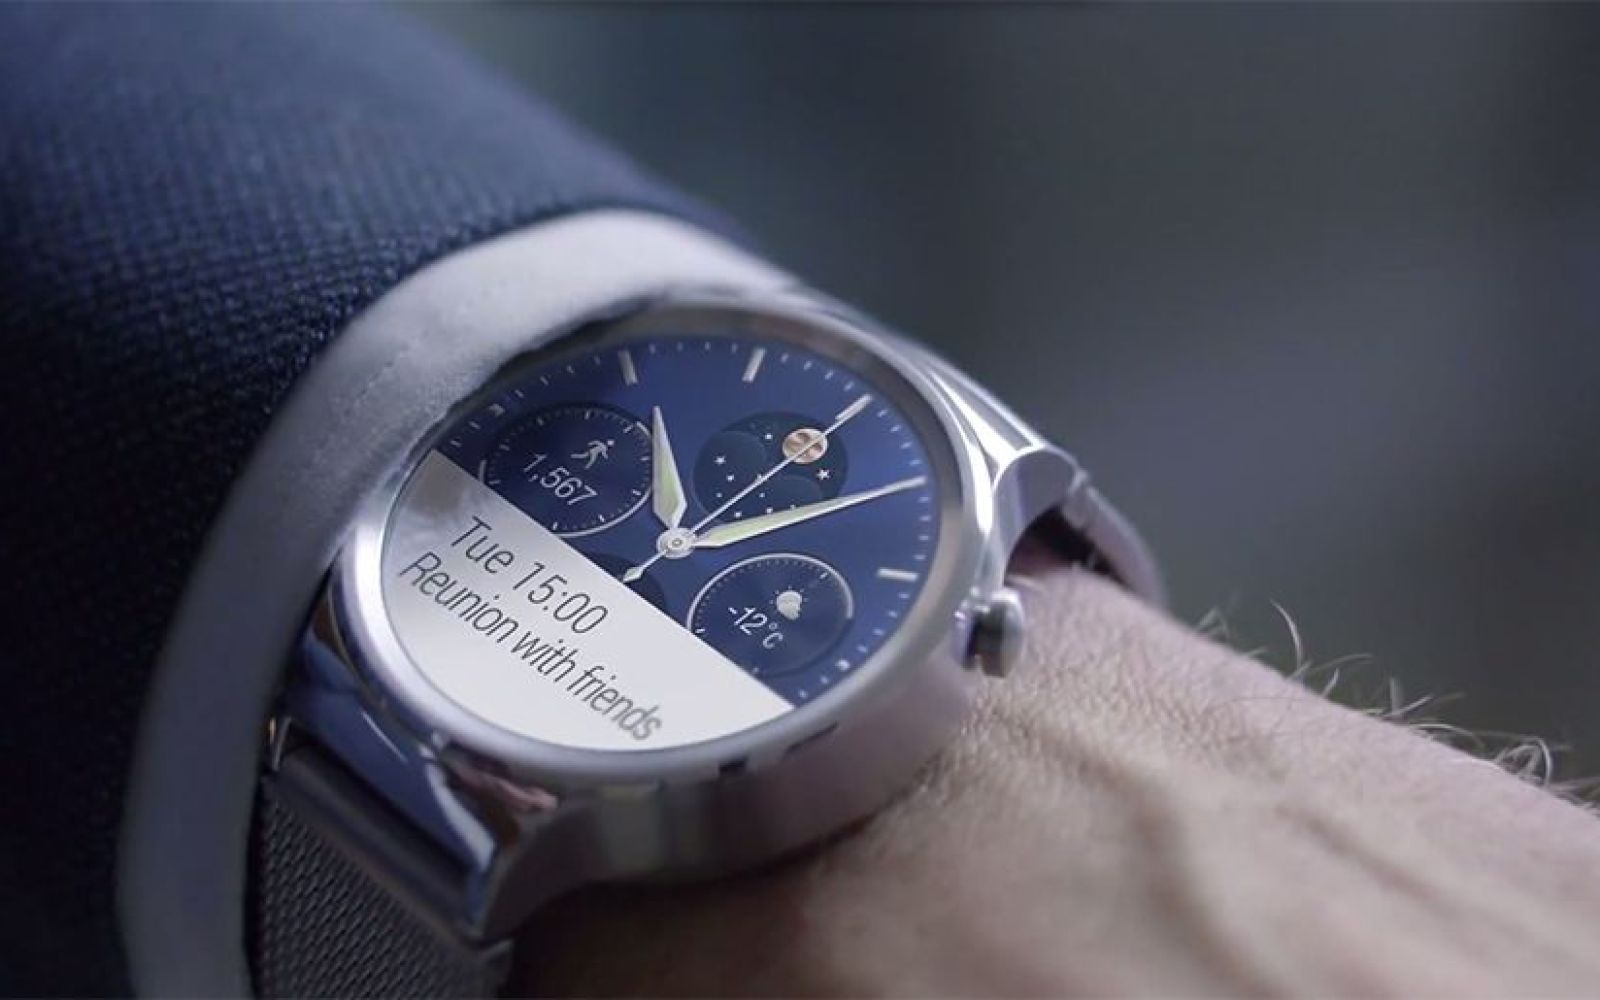 Latest version of Android Wear being beta tested on the Huawei Watch